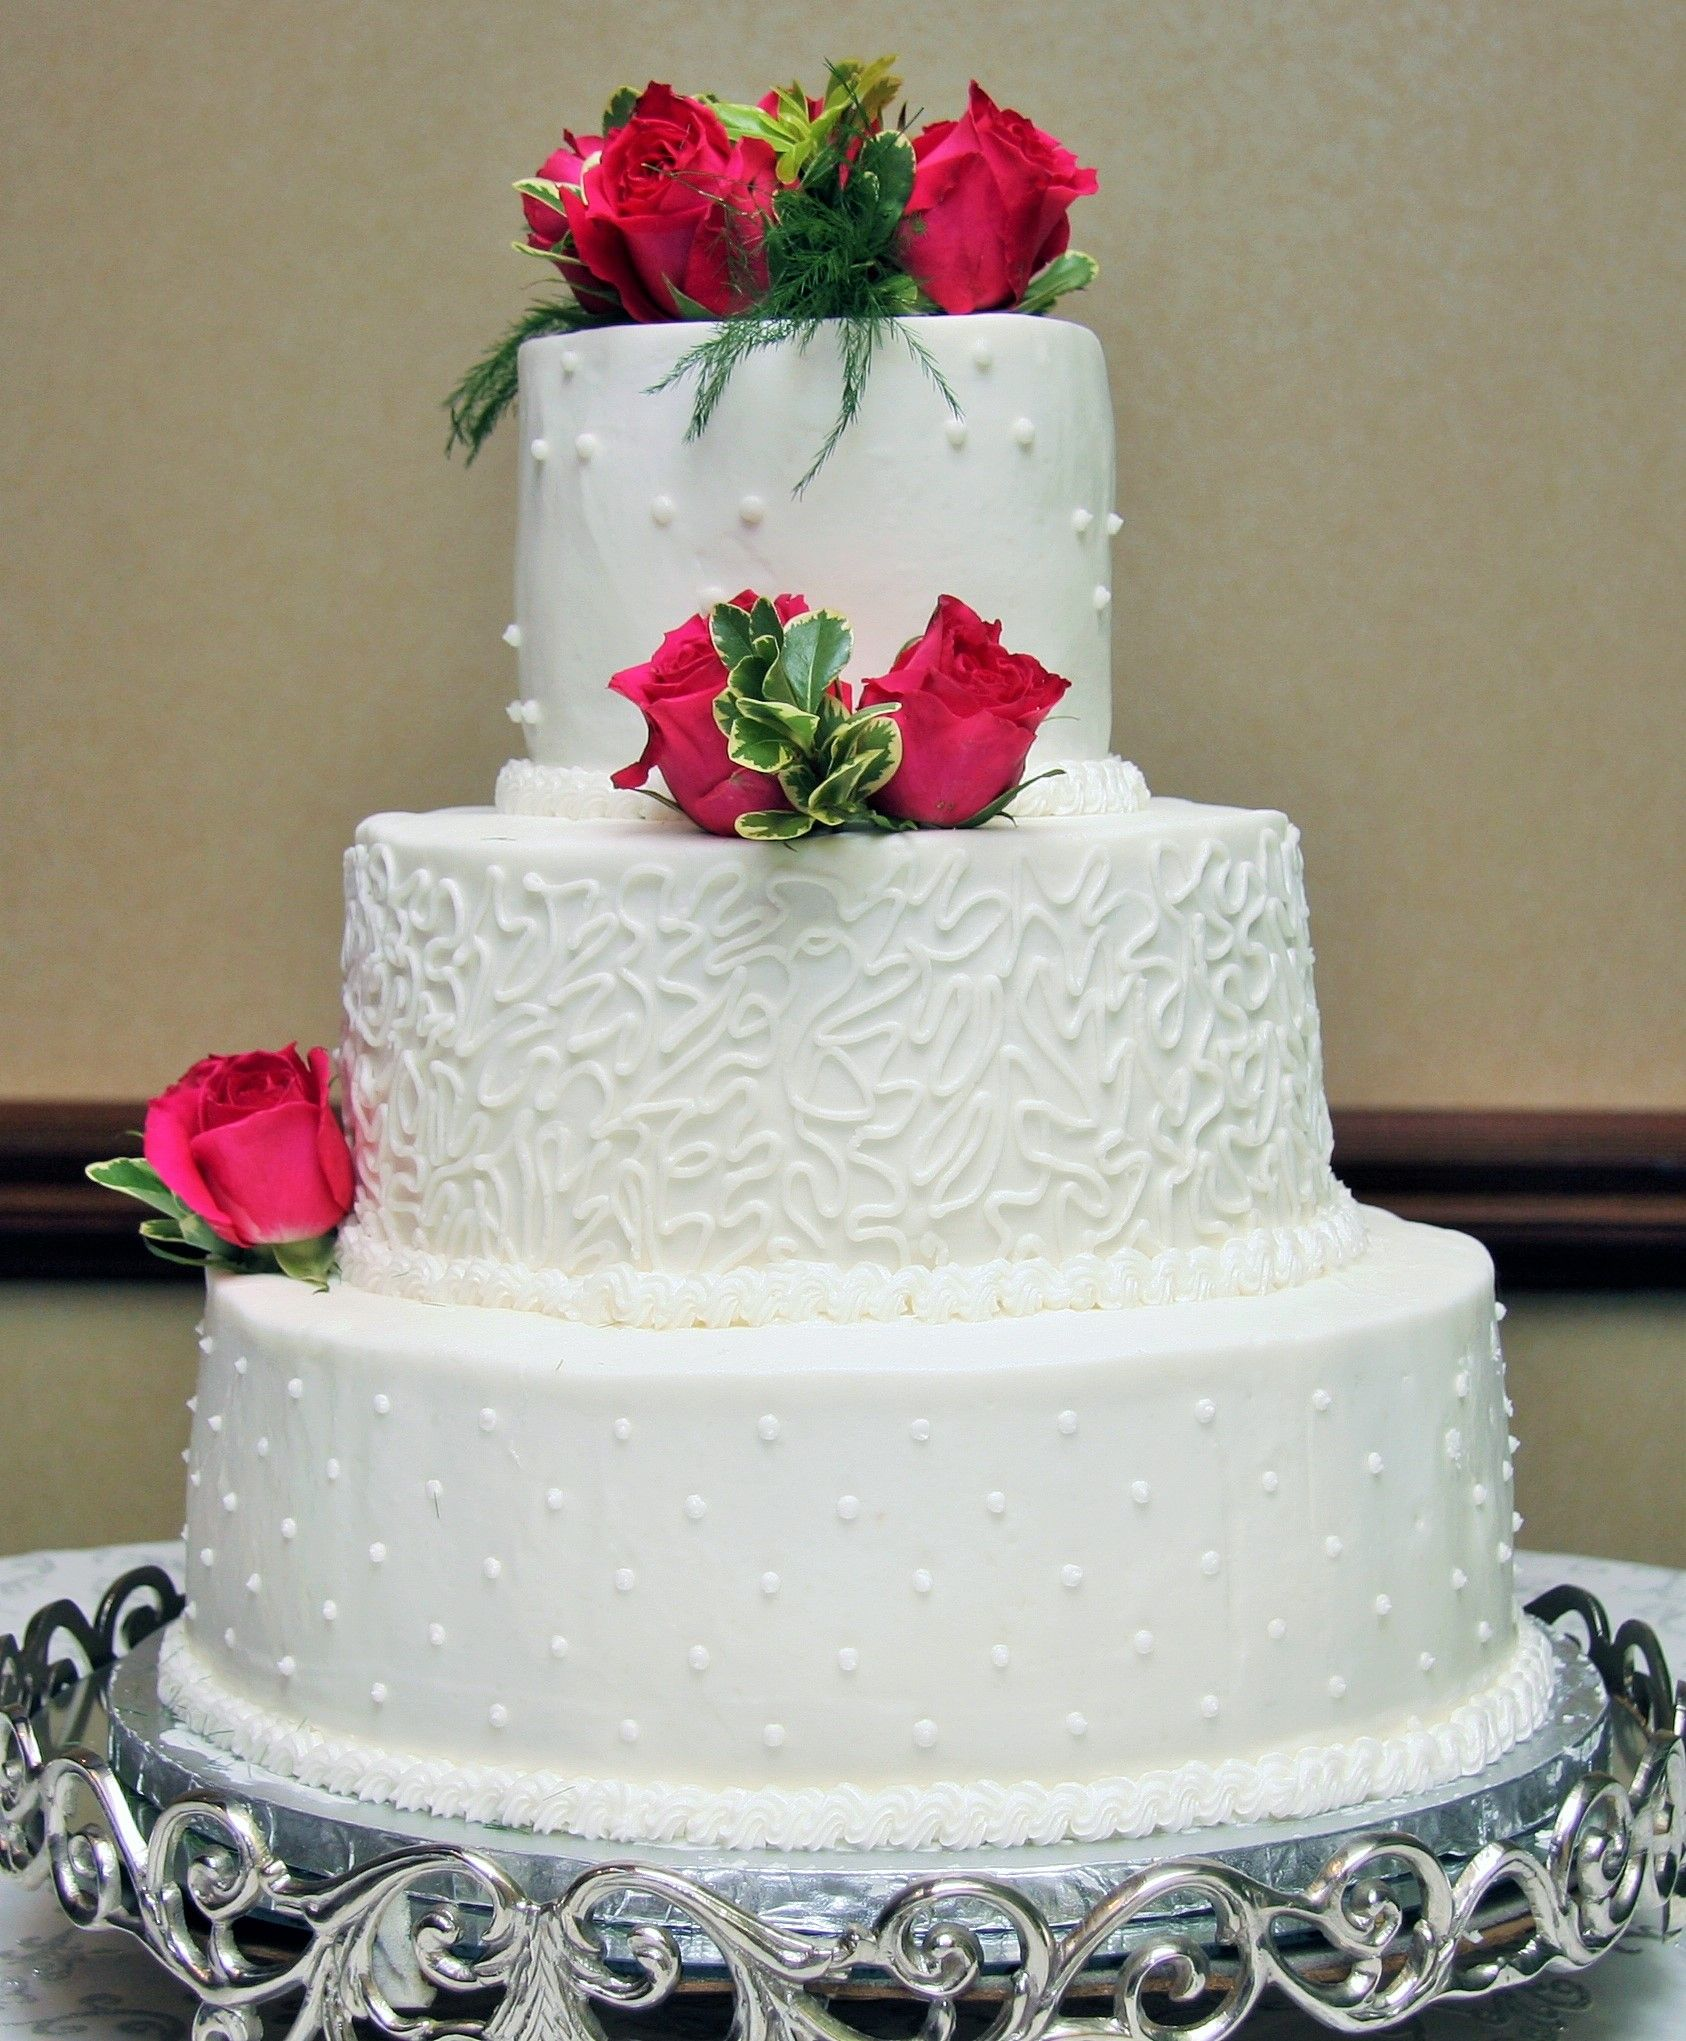 3 Tier Round Wedding Cake with Design and Pink Roses | Cakes and ...